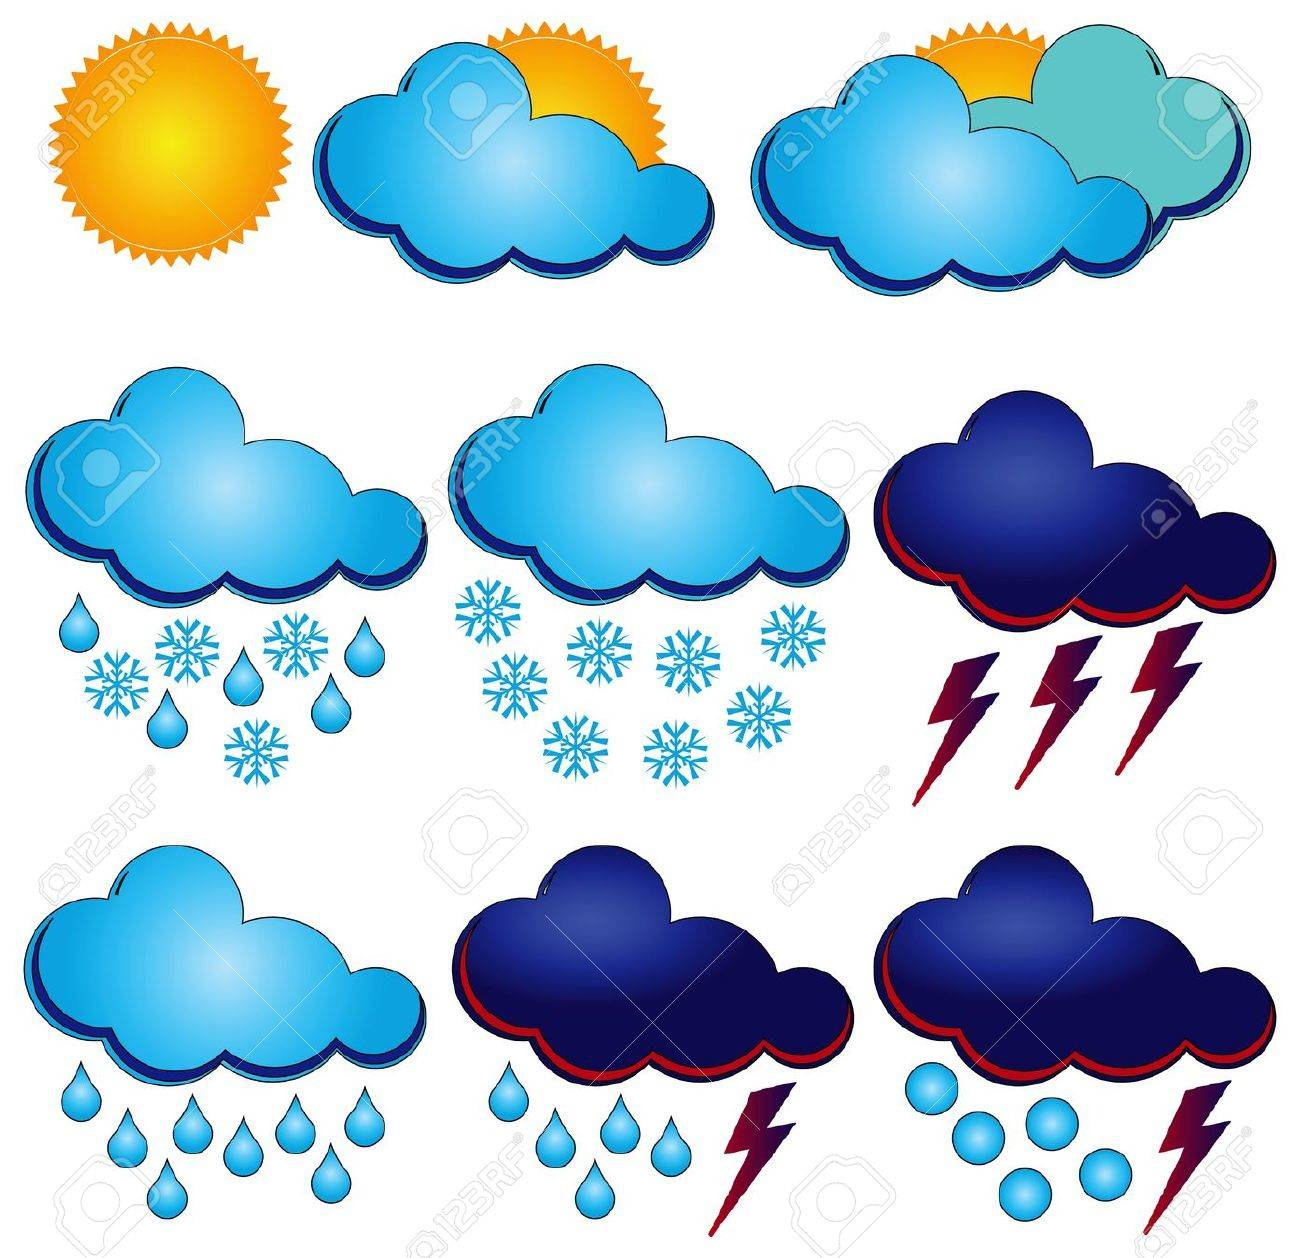 Synoptic symbols for different weather conditions. Stock Vector - 13408645